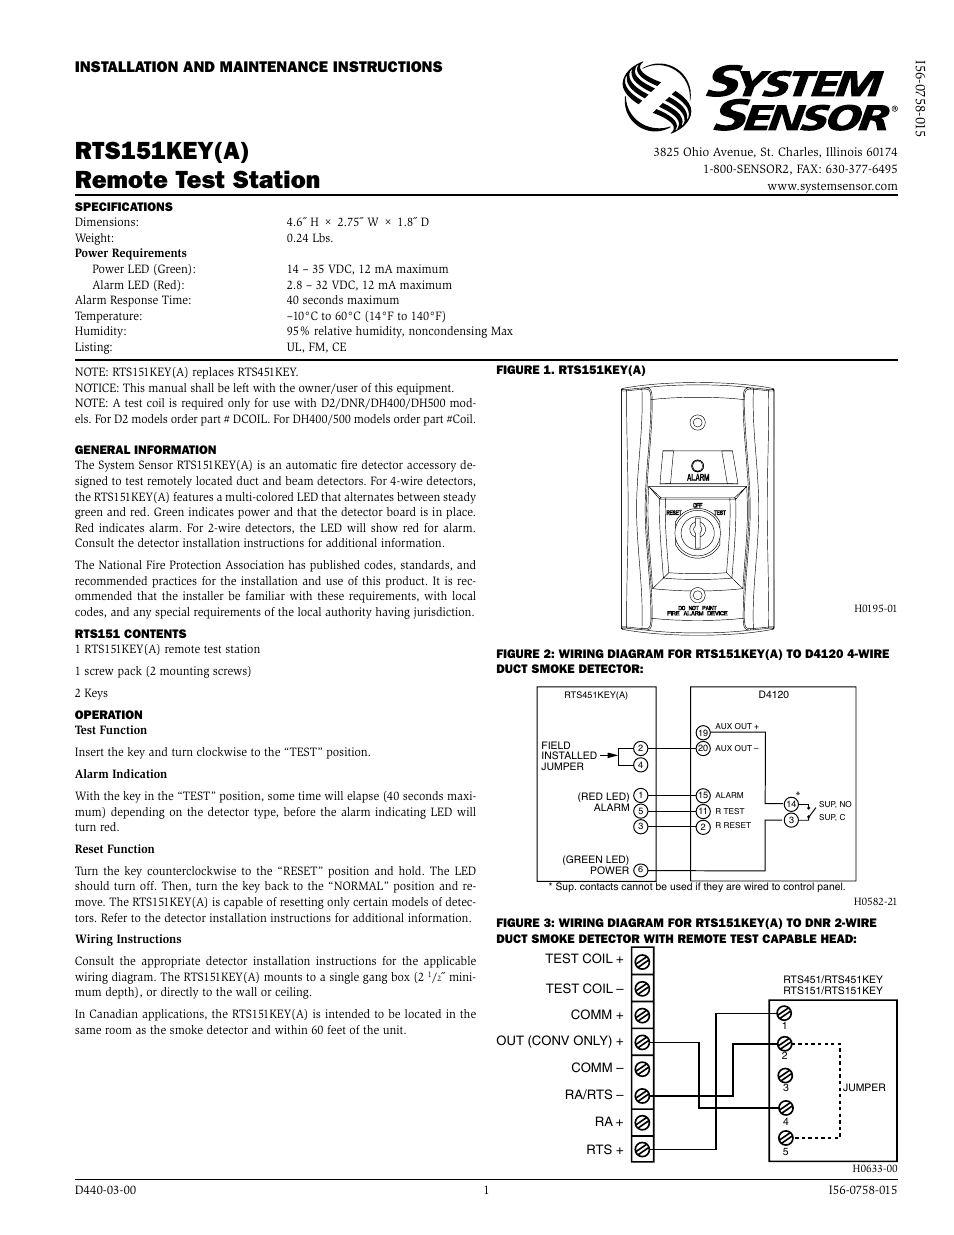 System Sensor RTS151KEY А User Manual 2 Pages Also For RTS151KEY